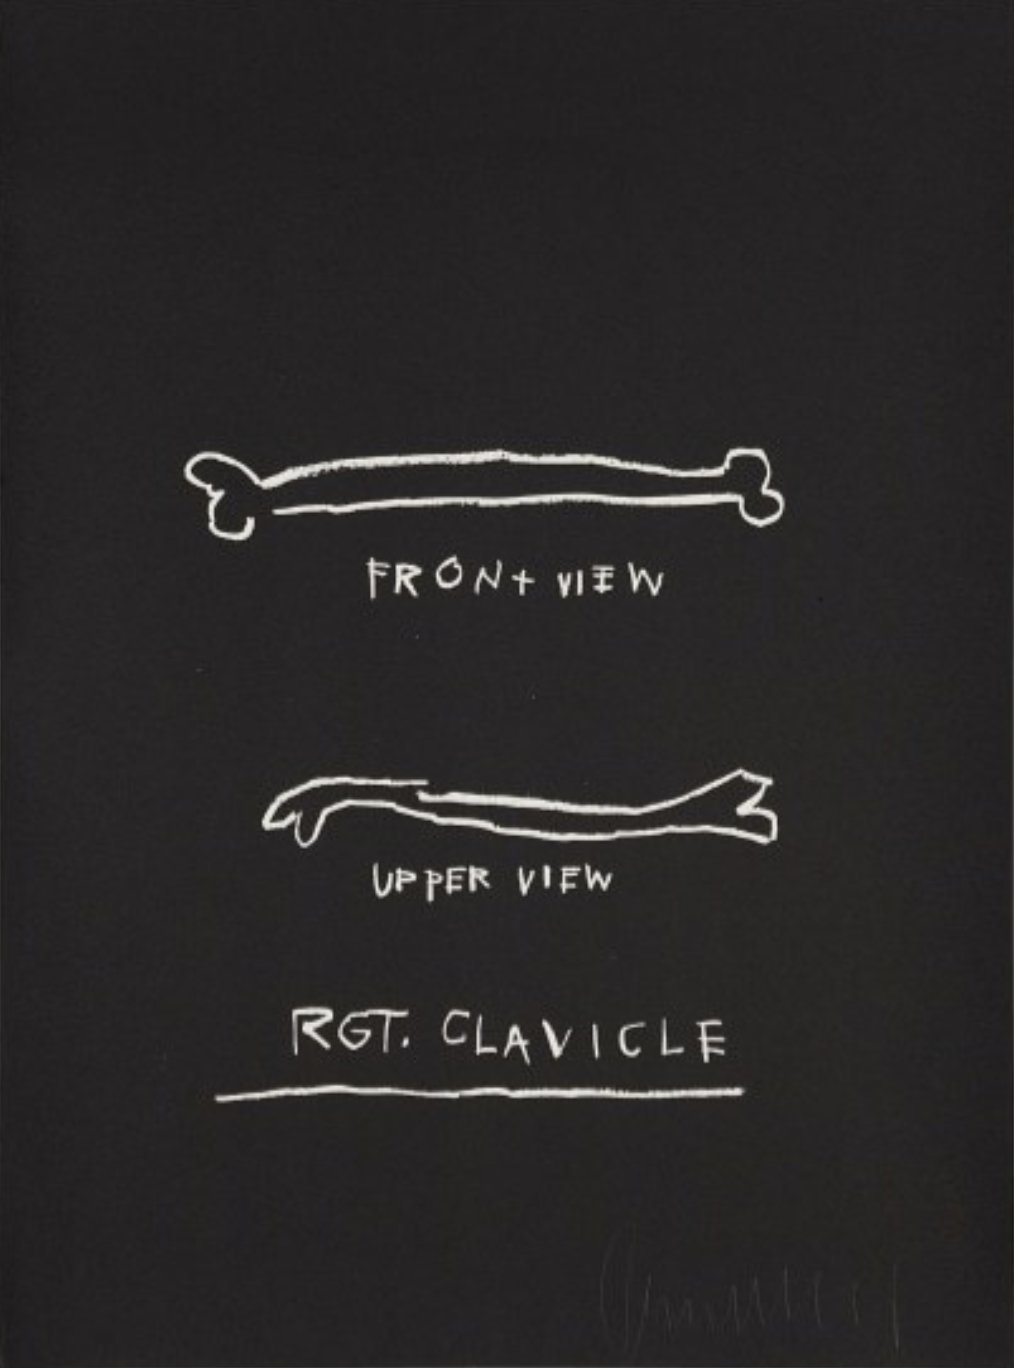 Right Clavicle by Jean-Michel Basquiat